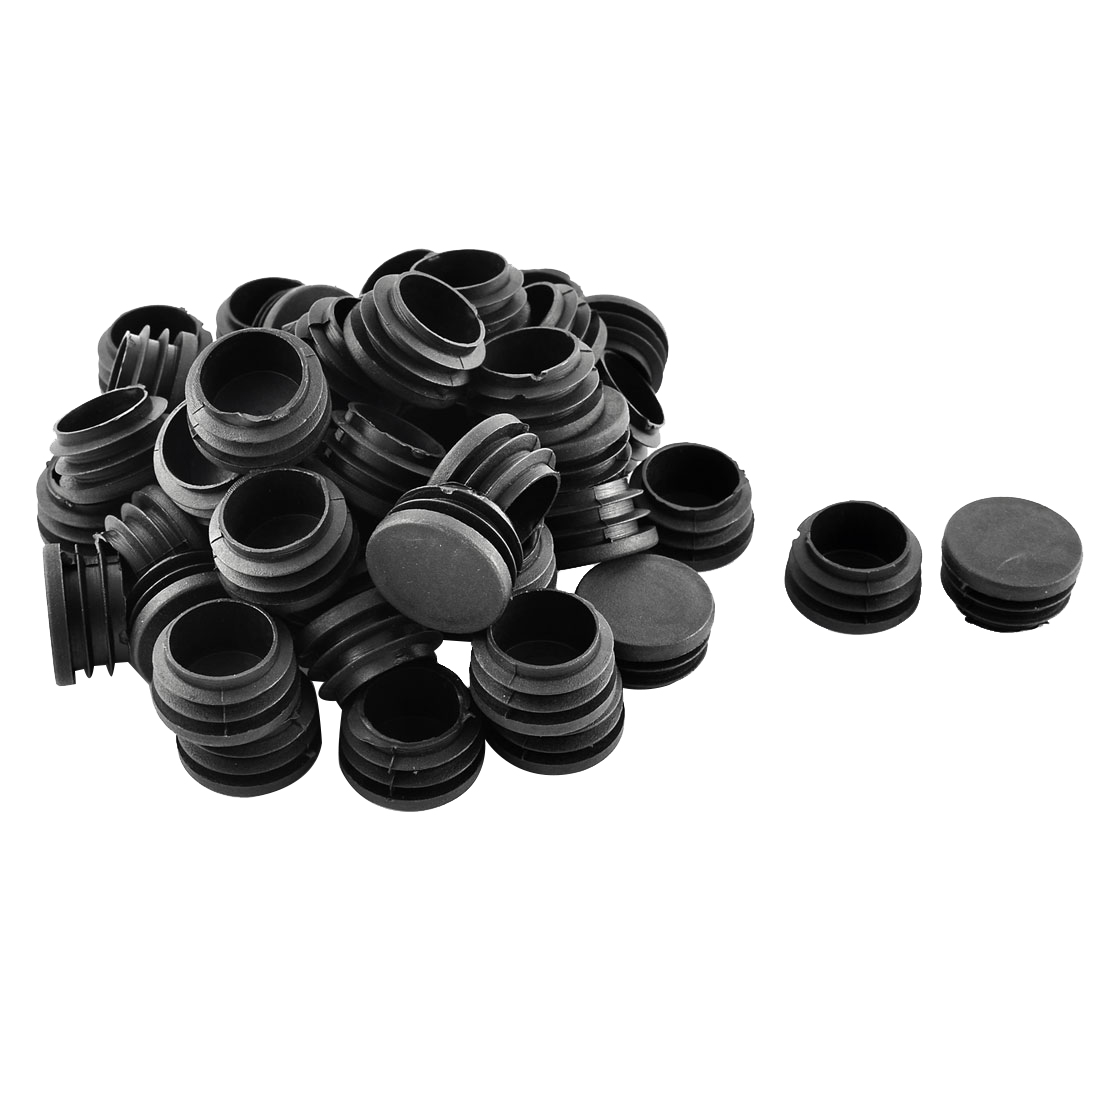 Plastic Round Ribbed Tube Inserts End Blanking Caps Black 32mm Diameter 50 Pcs